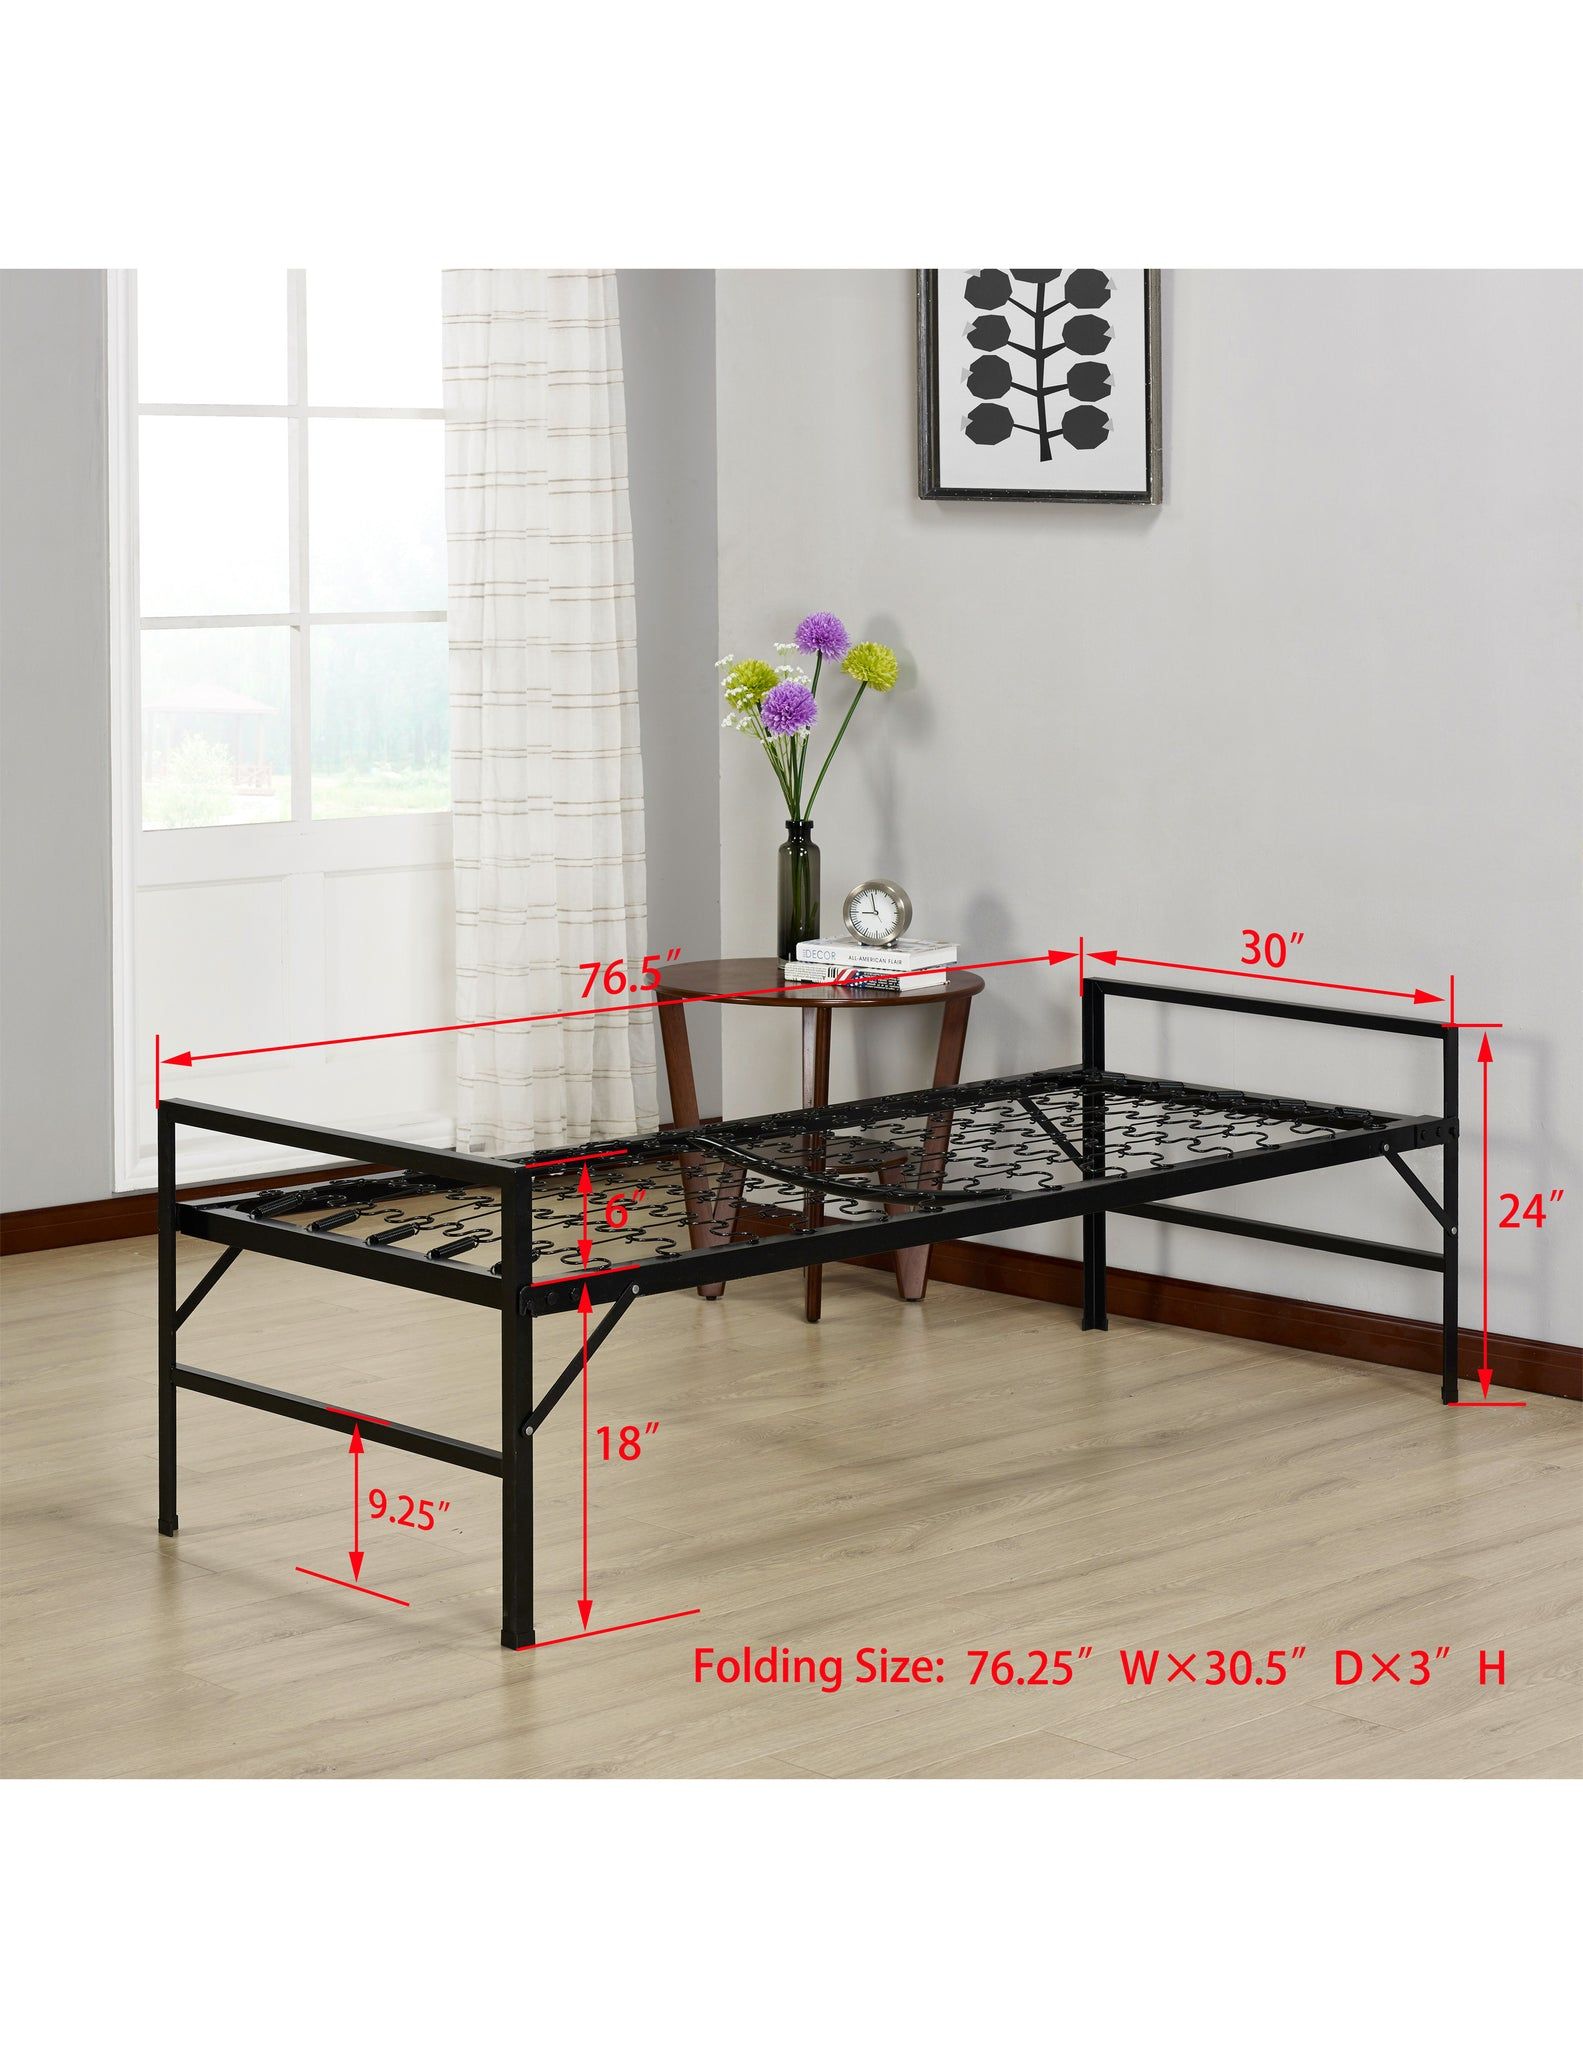 chiltern fb guest bed thanet folding closed pocket sprung beds product open